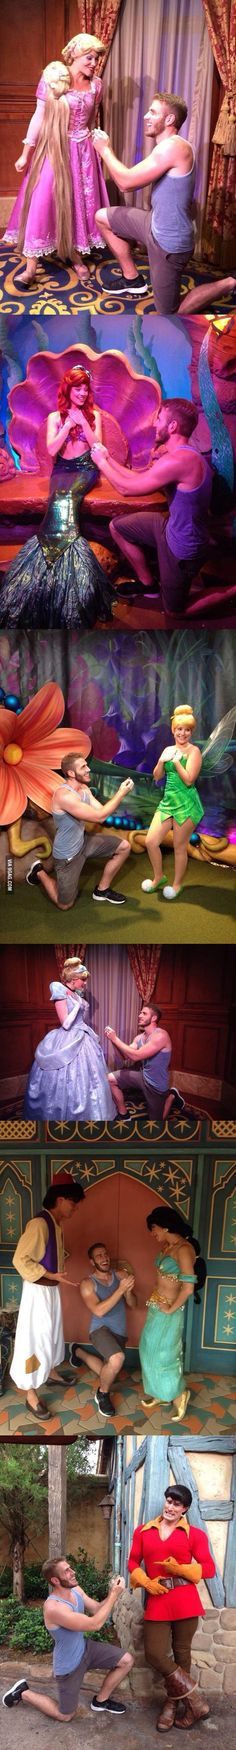 Guy proposes to various Disney characters at Disney World. Haha